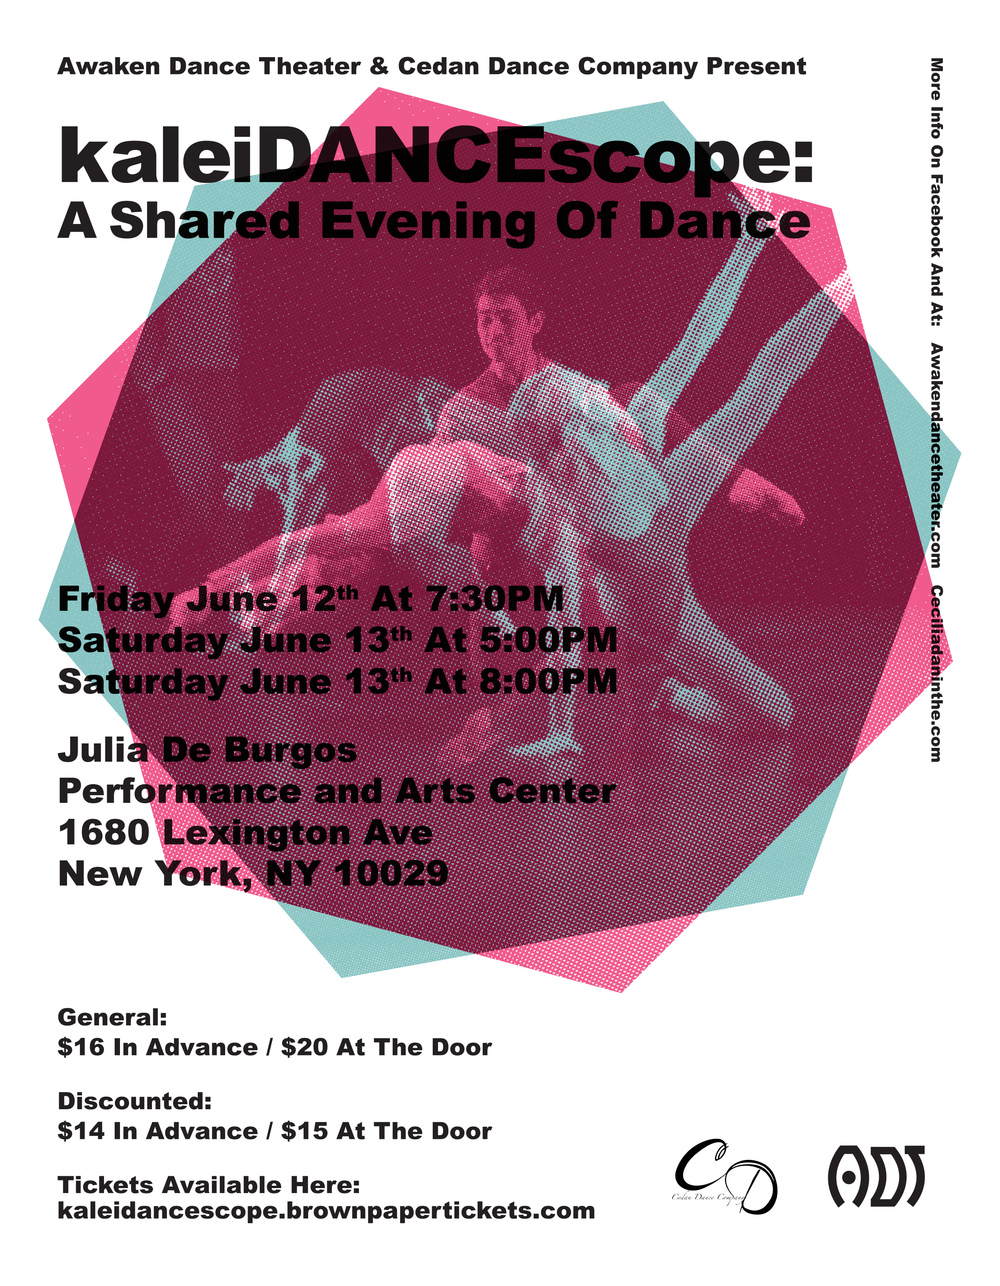 kaleidancescope-Flyer.jpg